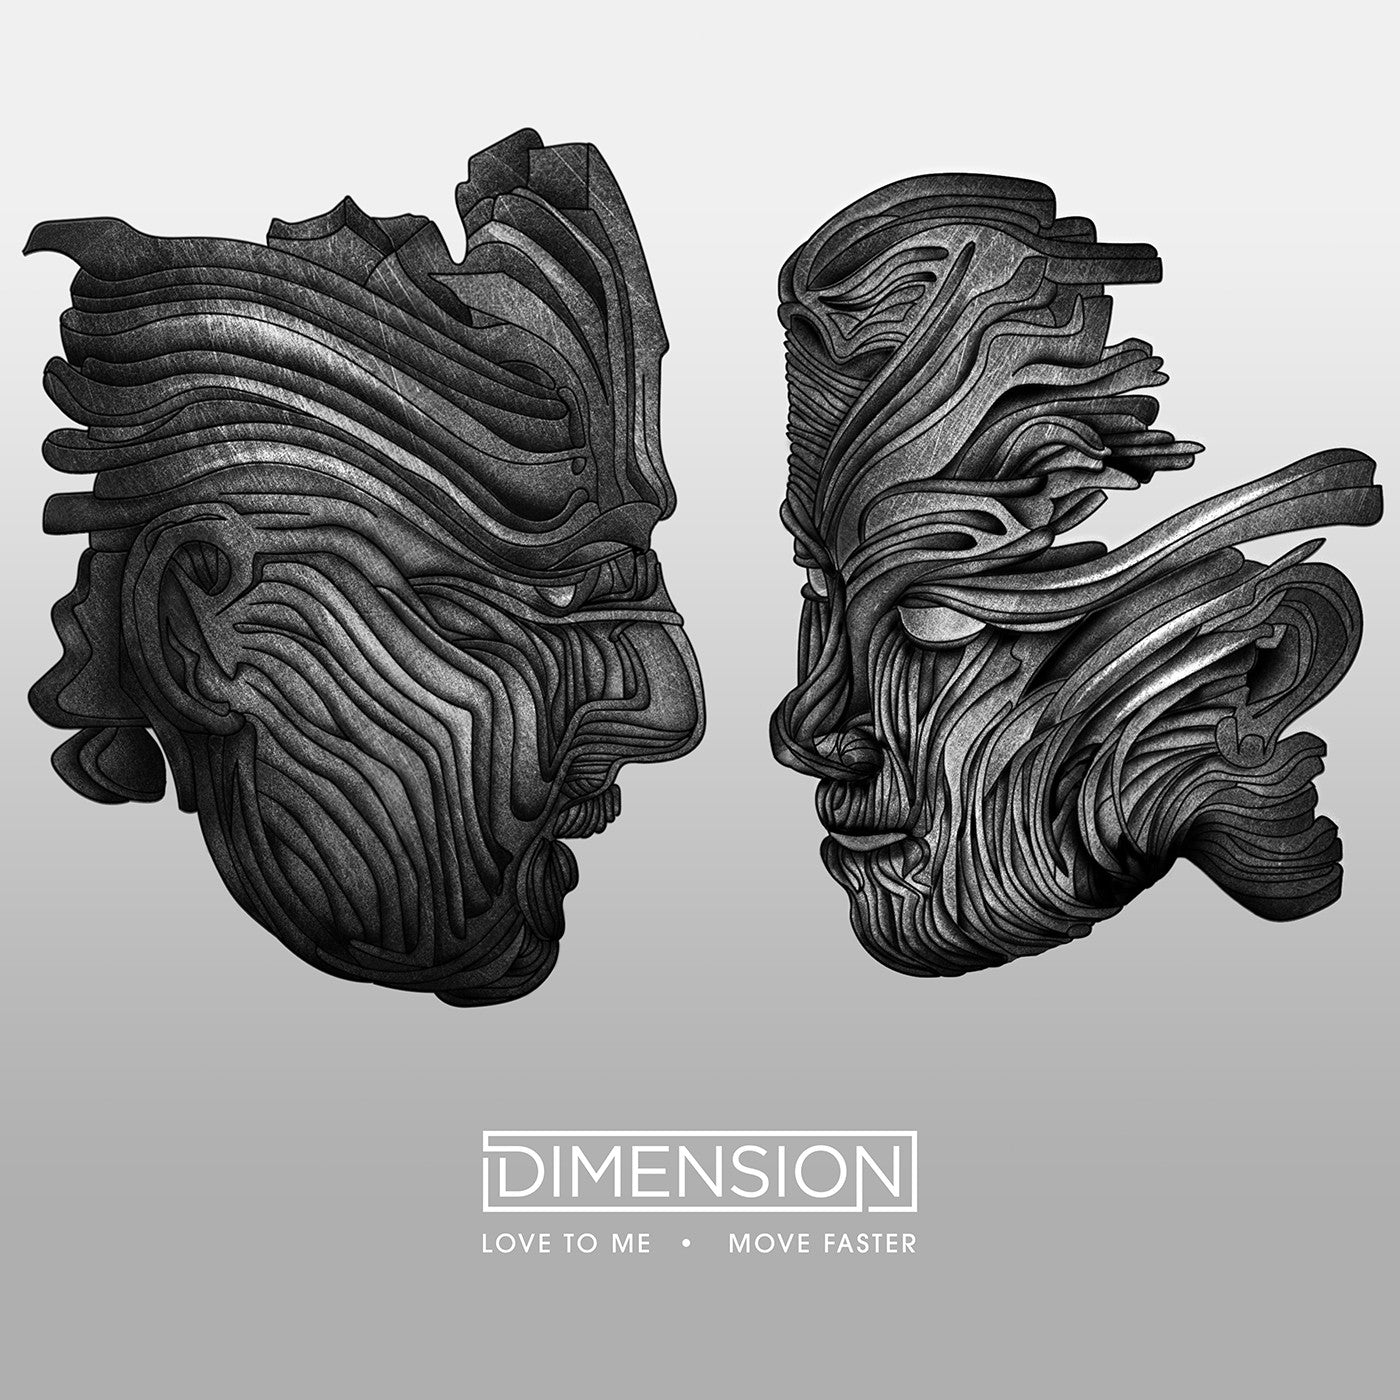 Dimension - Love to Me / Move Faster - Unearthed Sounds